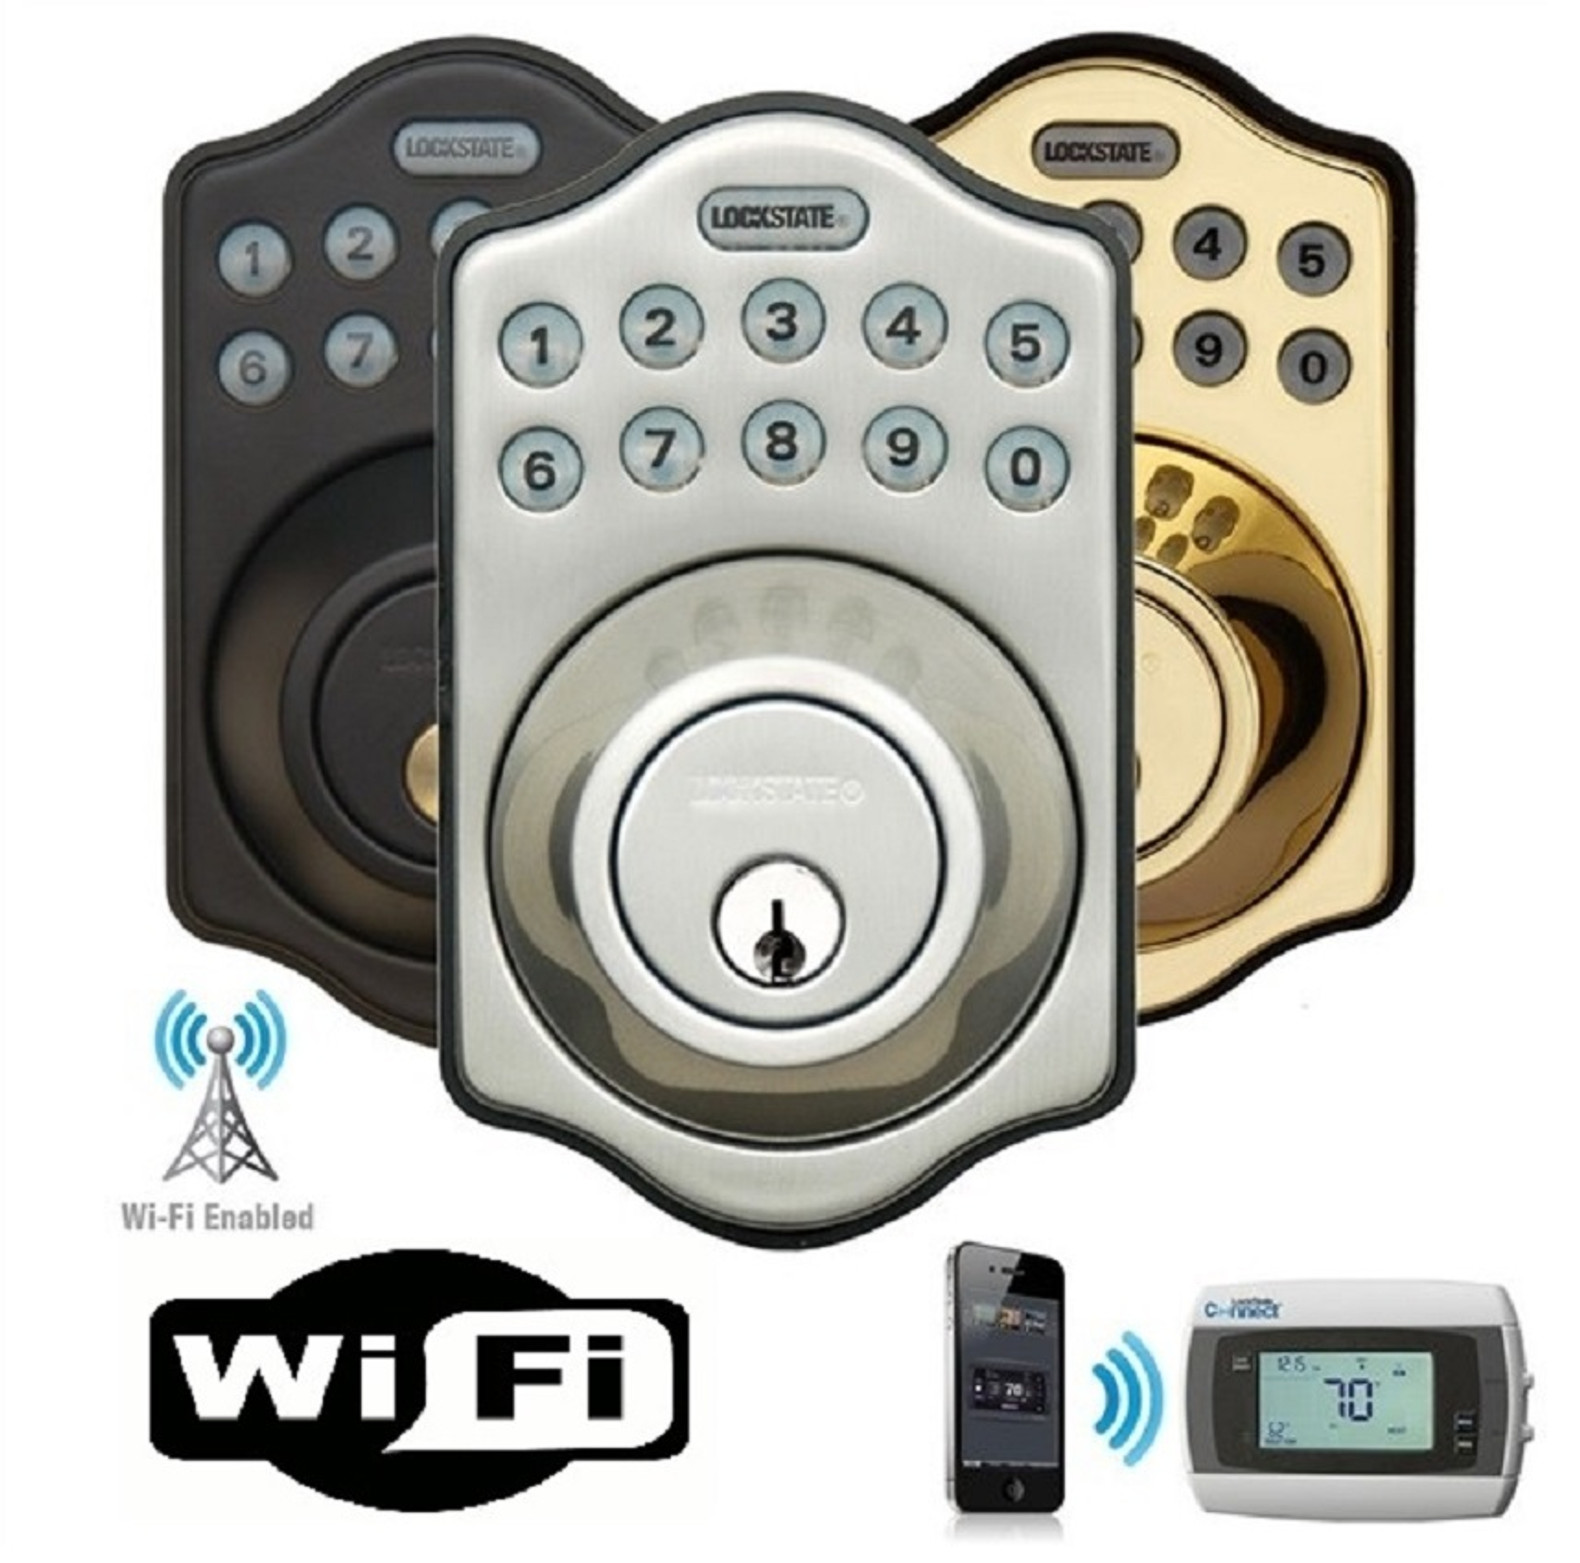 WiFi Products